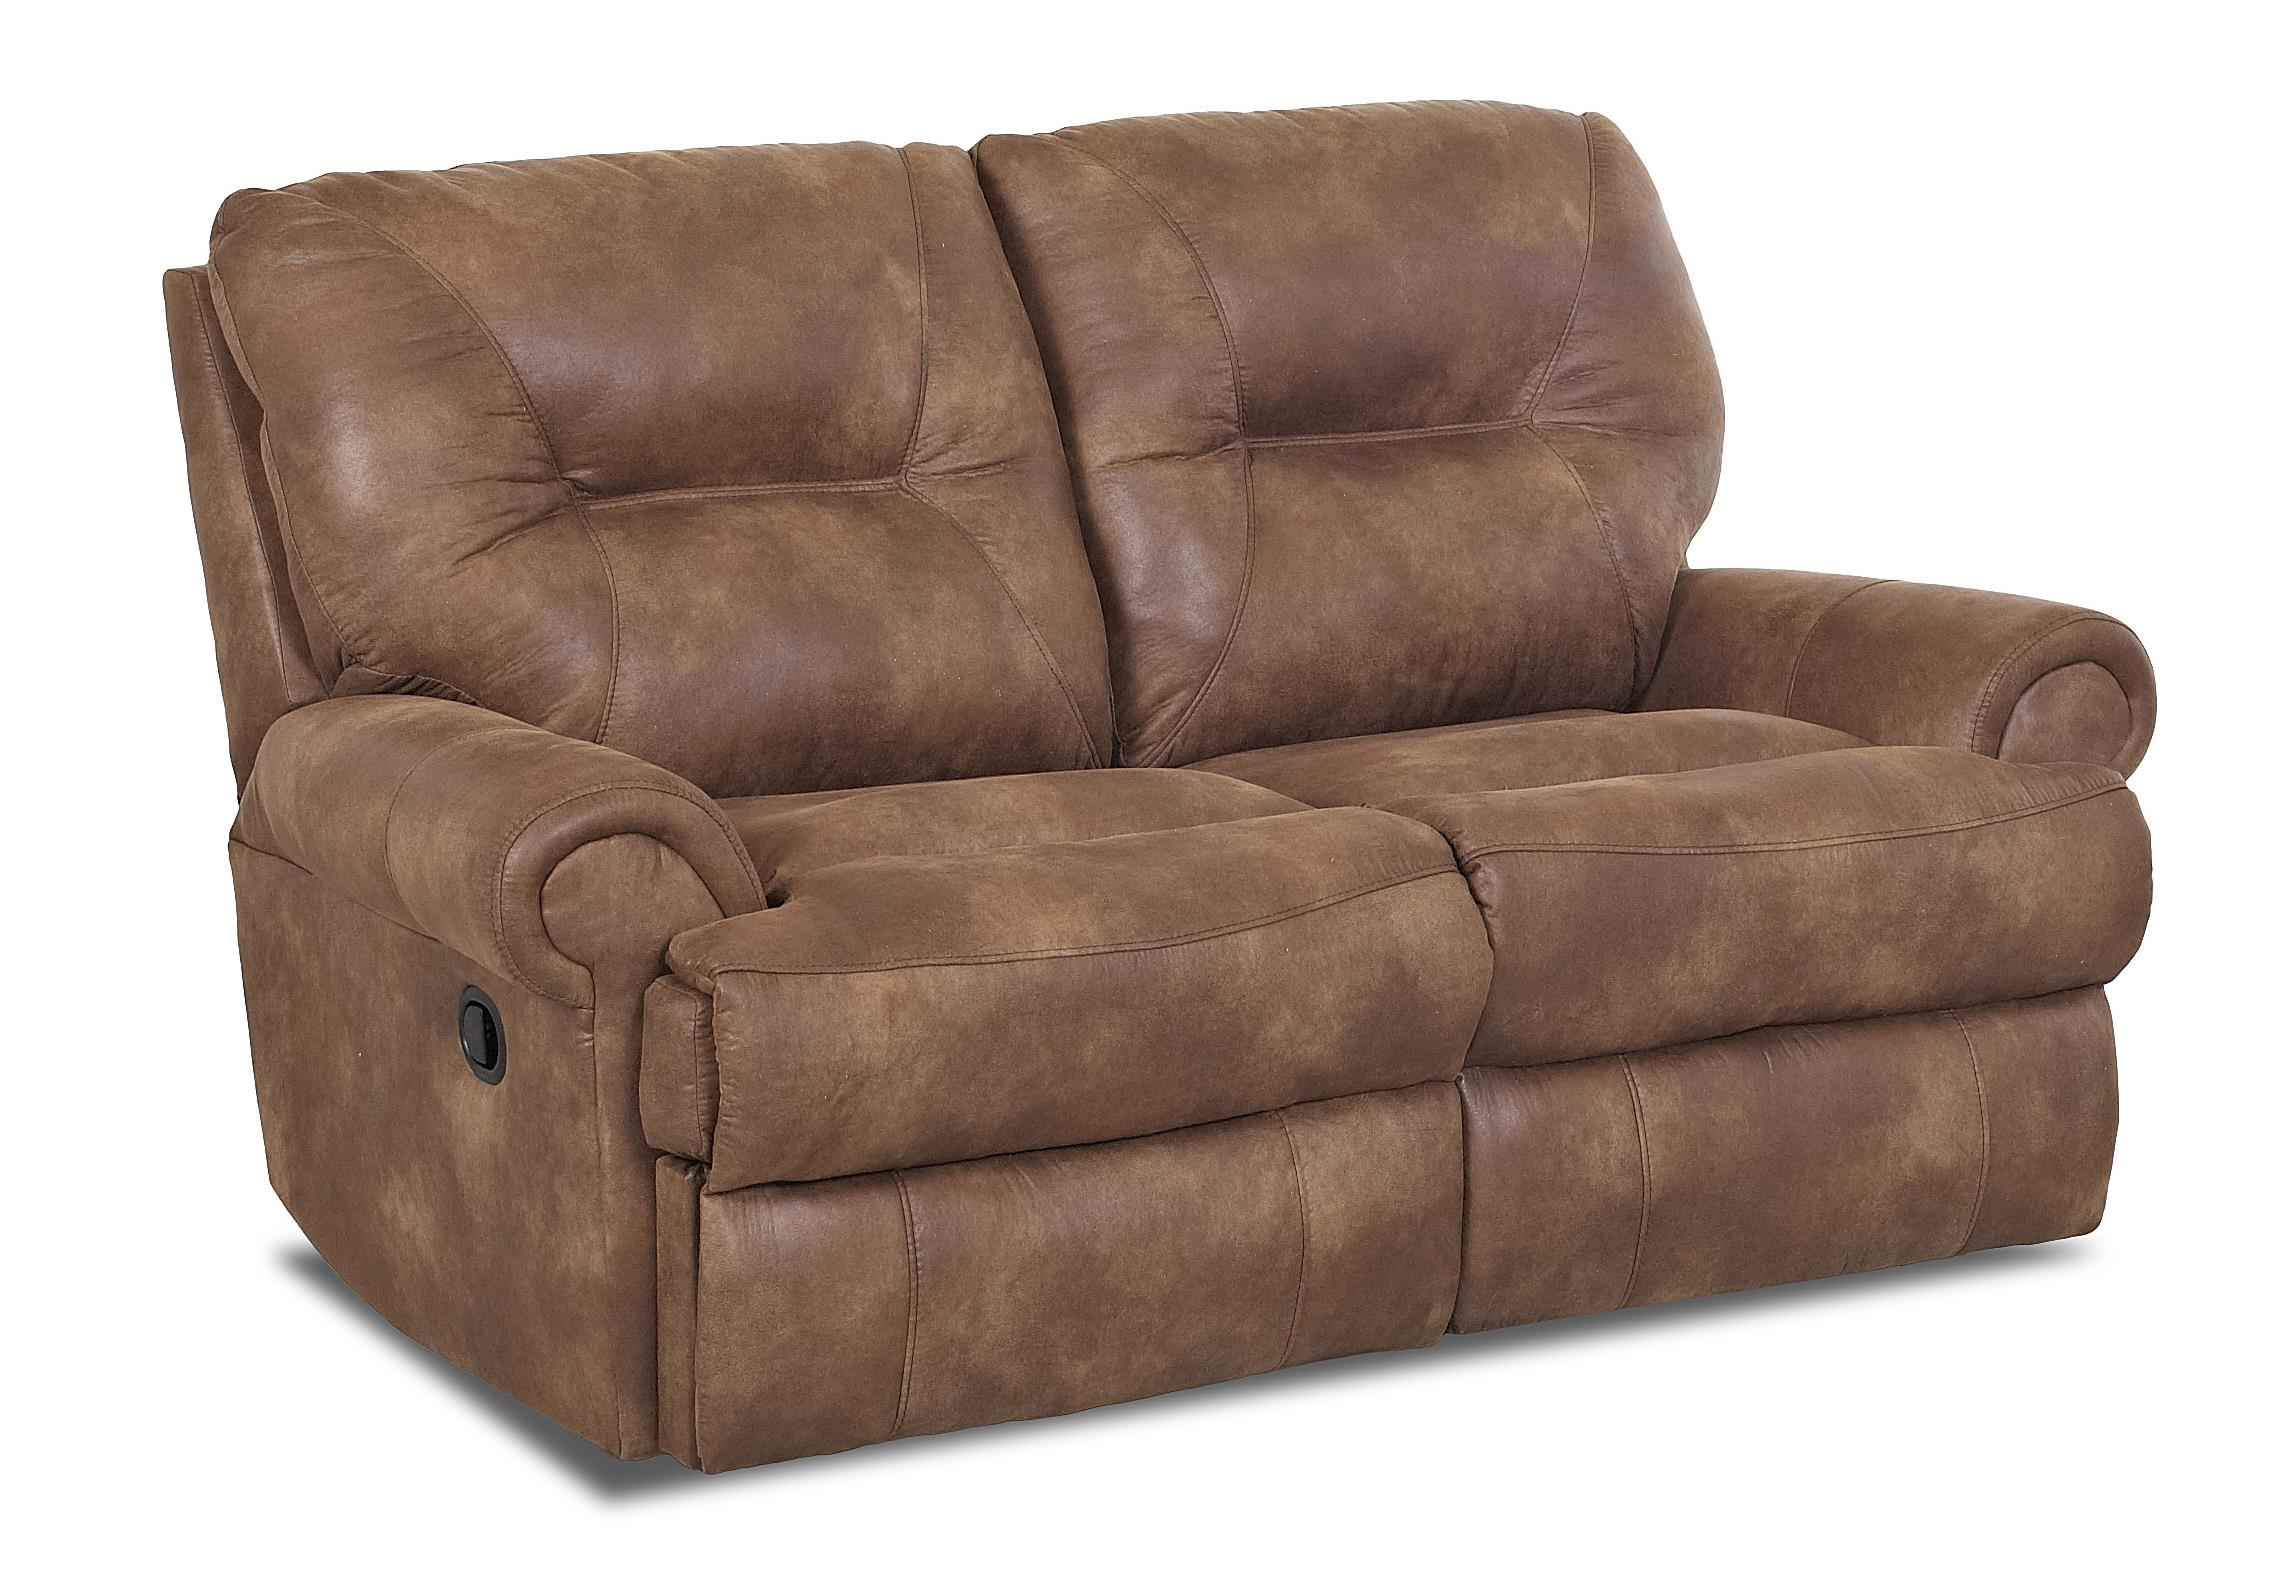 Roadster traditional power reclining loveseat by klaussner wolf furniture Power loveseat recliner